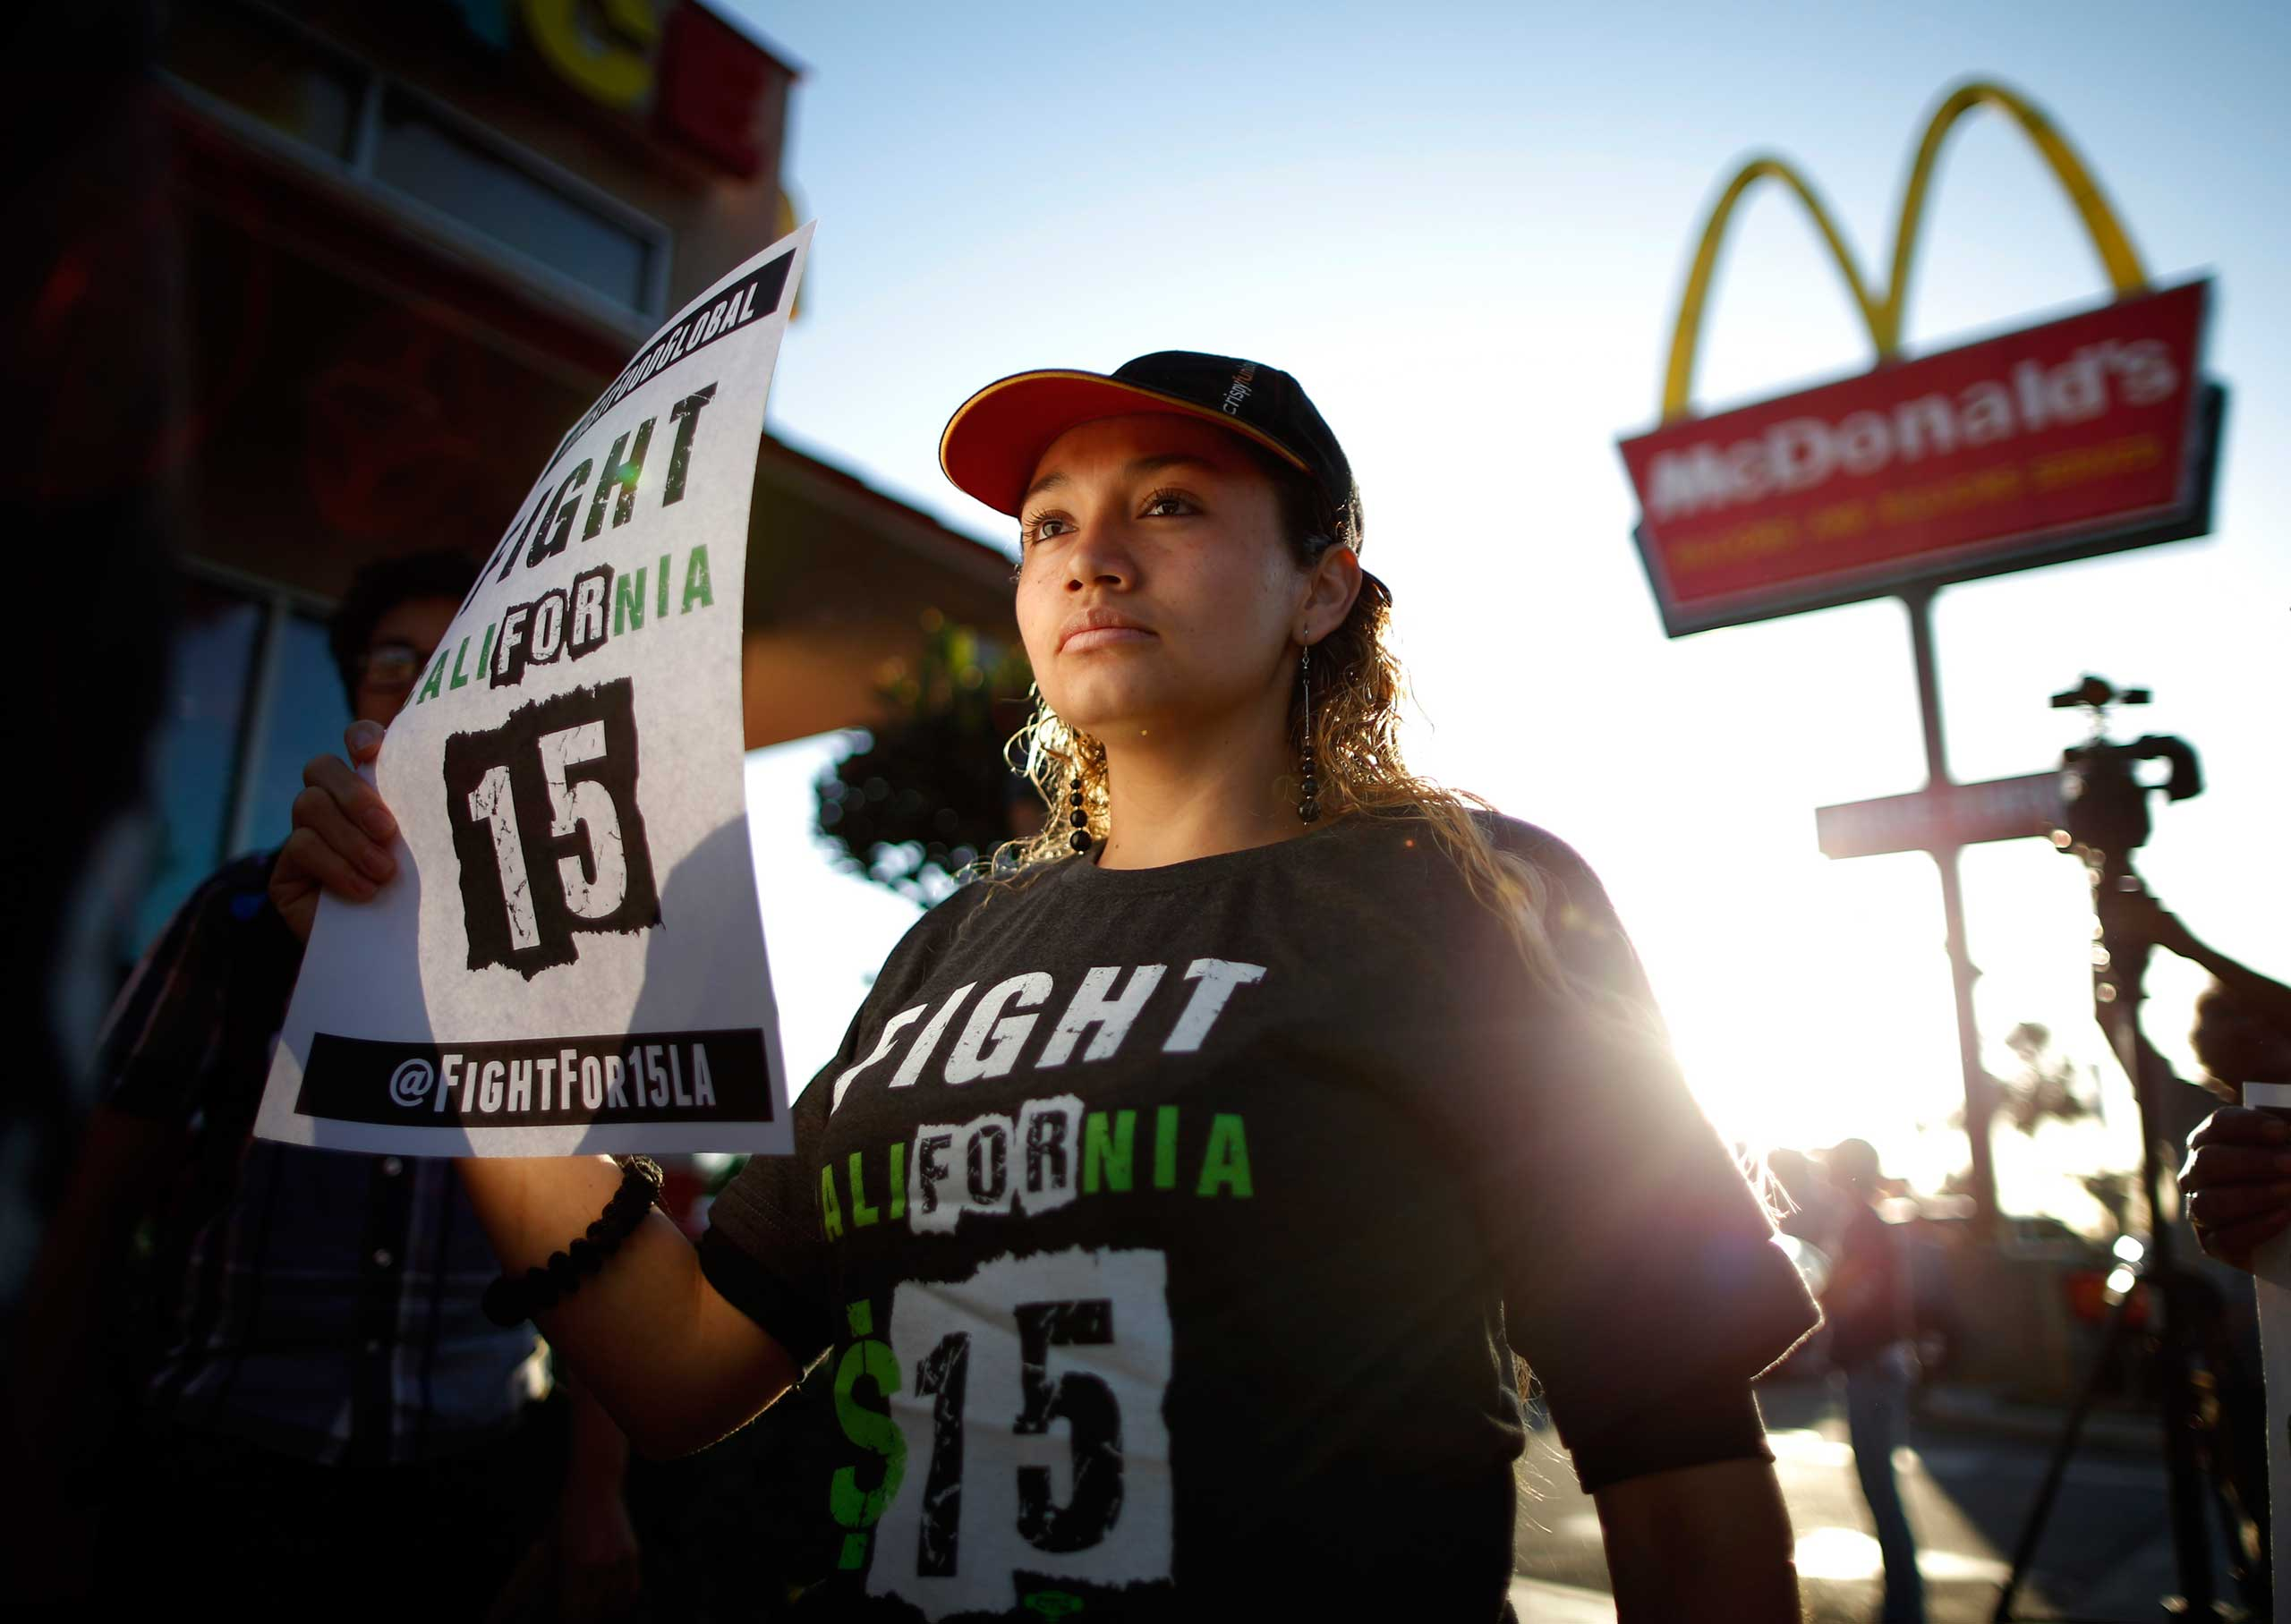 United States:  Protests demanding higher wages for fast-food workersDemonstrators take part in a protest to demand higher wages for fast-food workers outside McDonald's in Los Angeles, May 15, 2014.